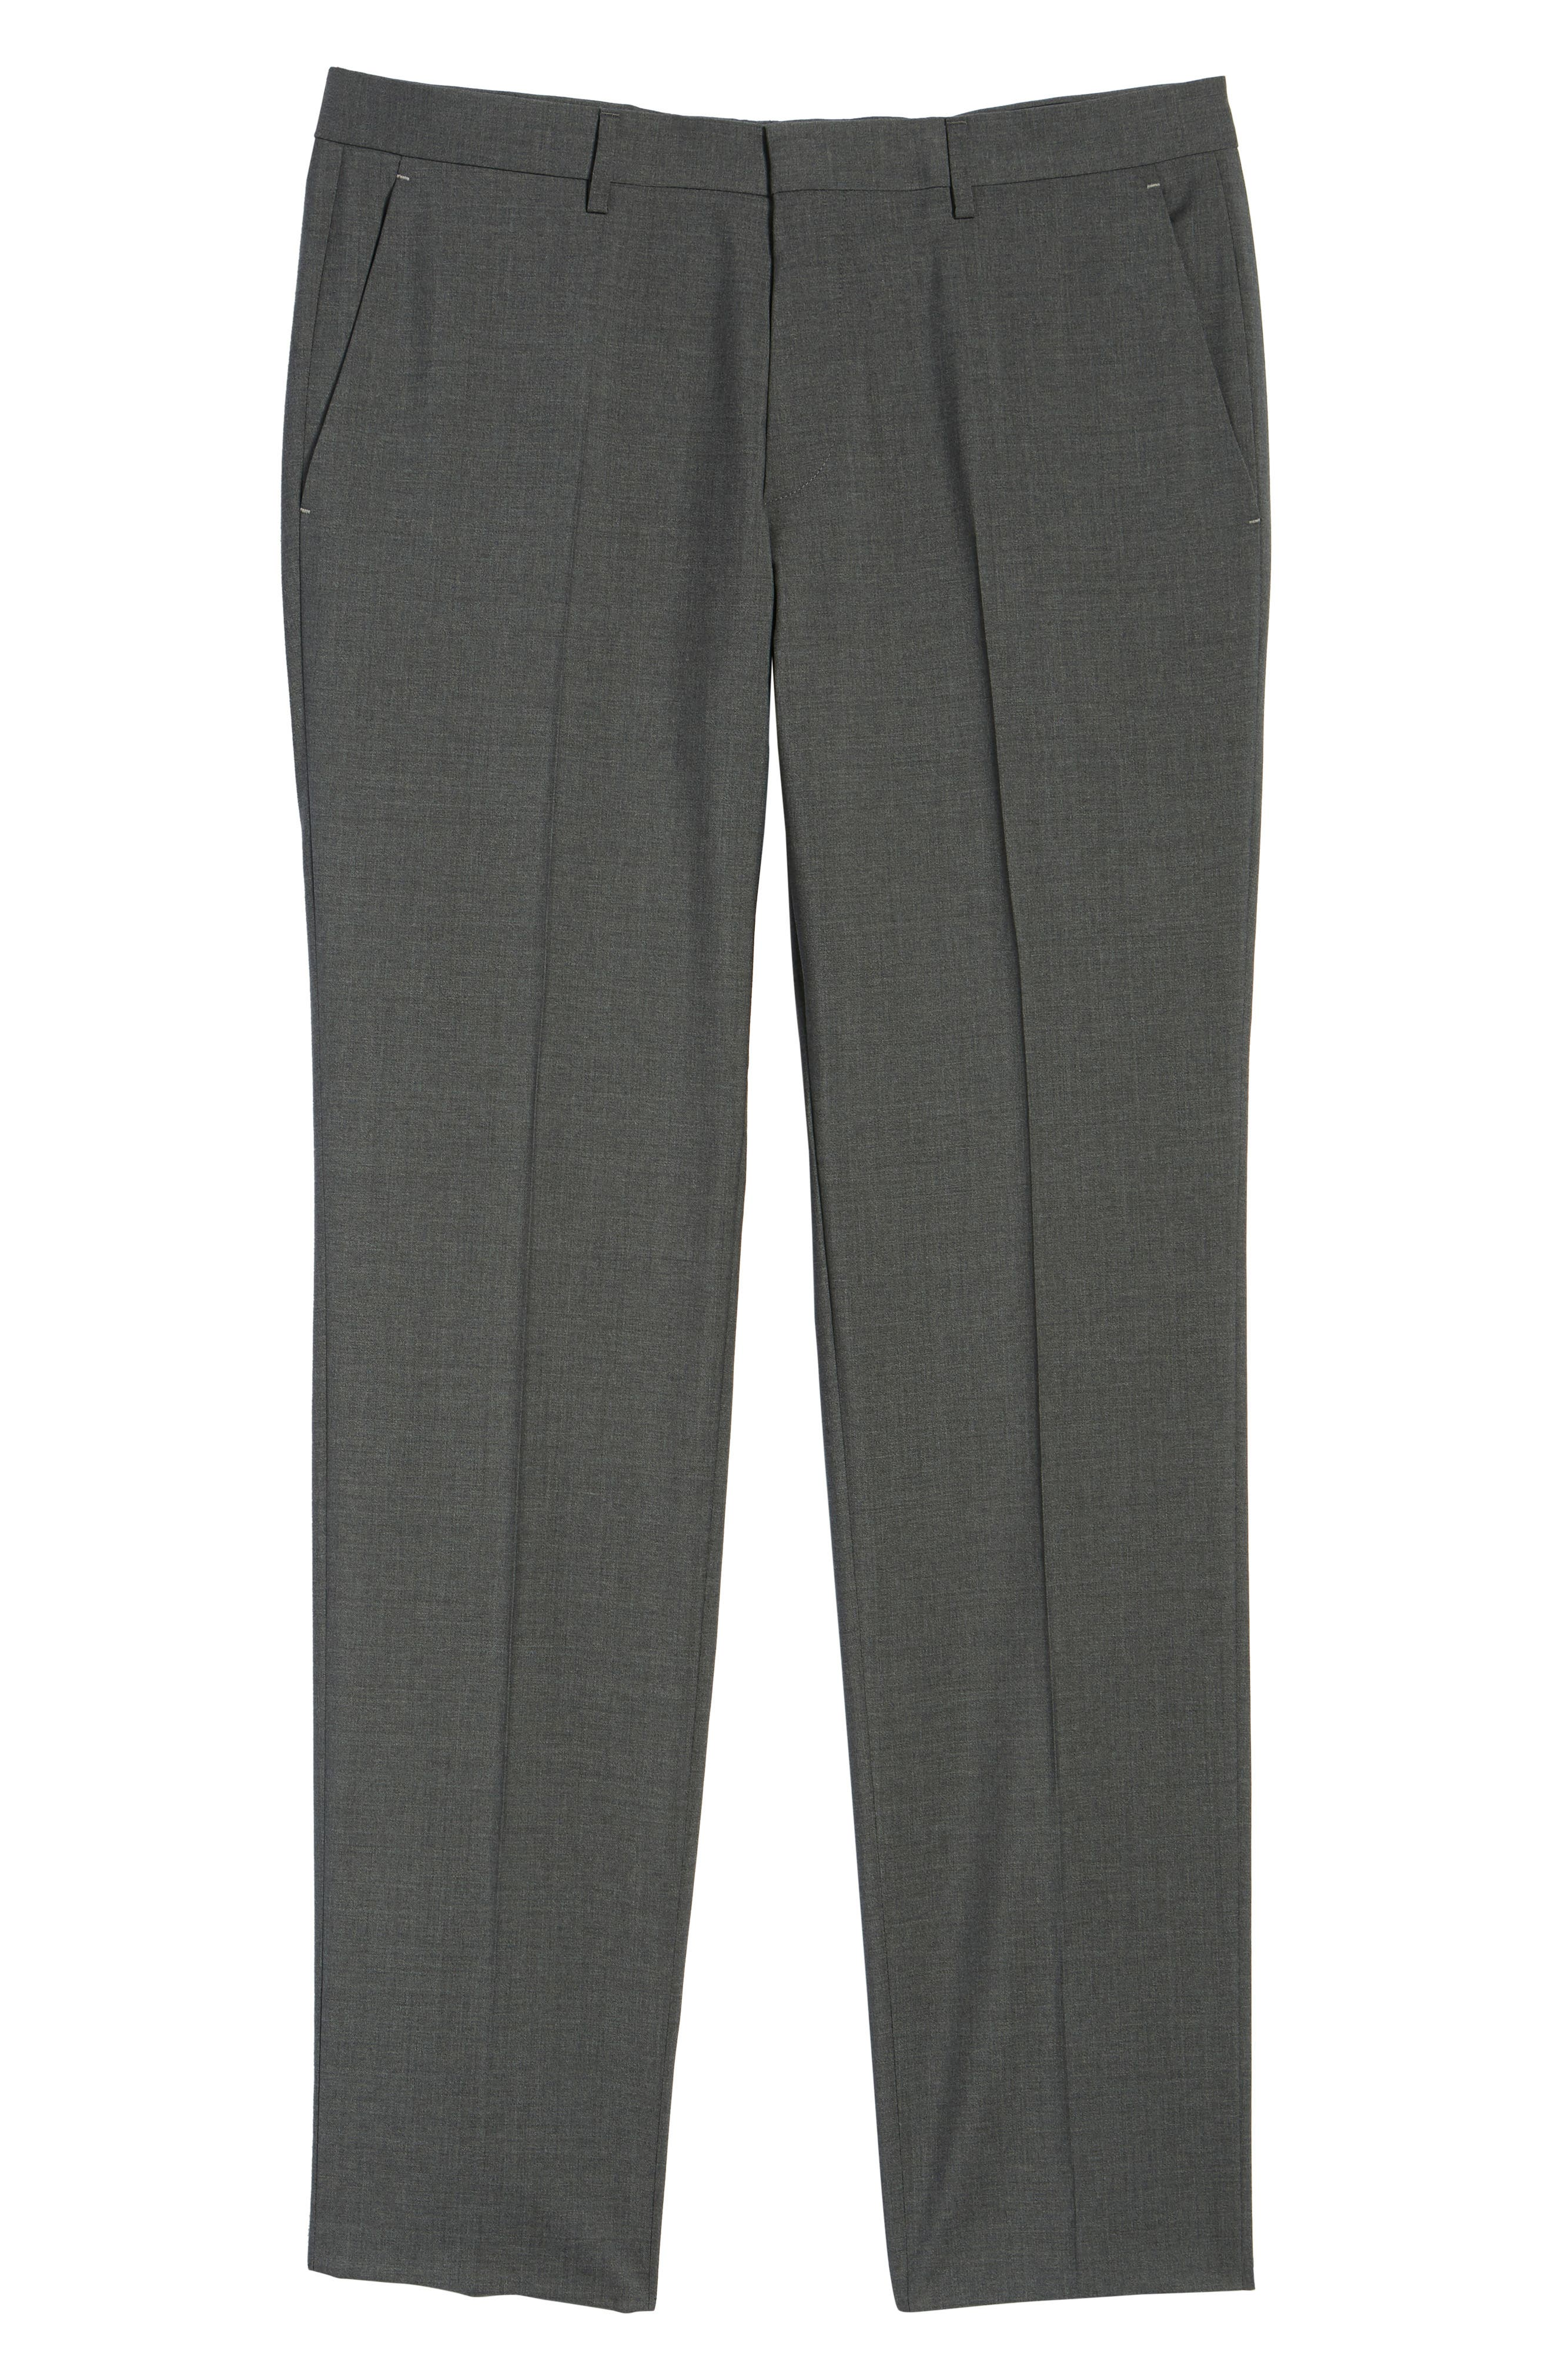 BOSS, Genesis Flat Front Solid Wool Trousers, Alternate thumbnail 6, color, CHARCOAL